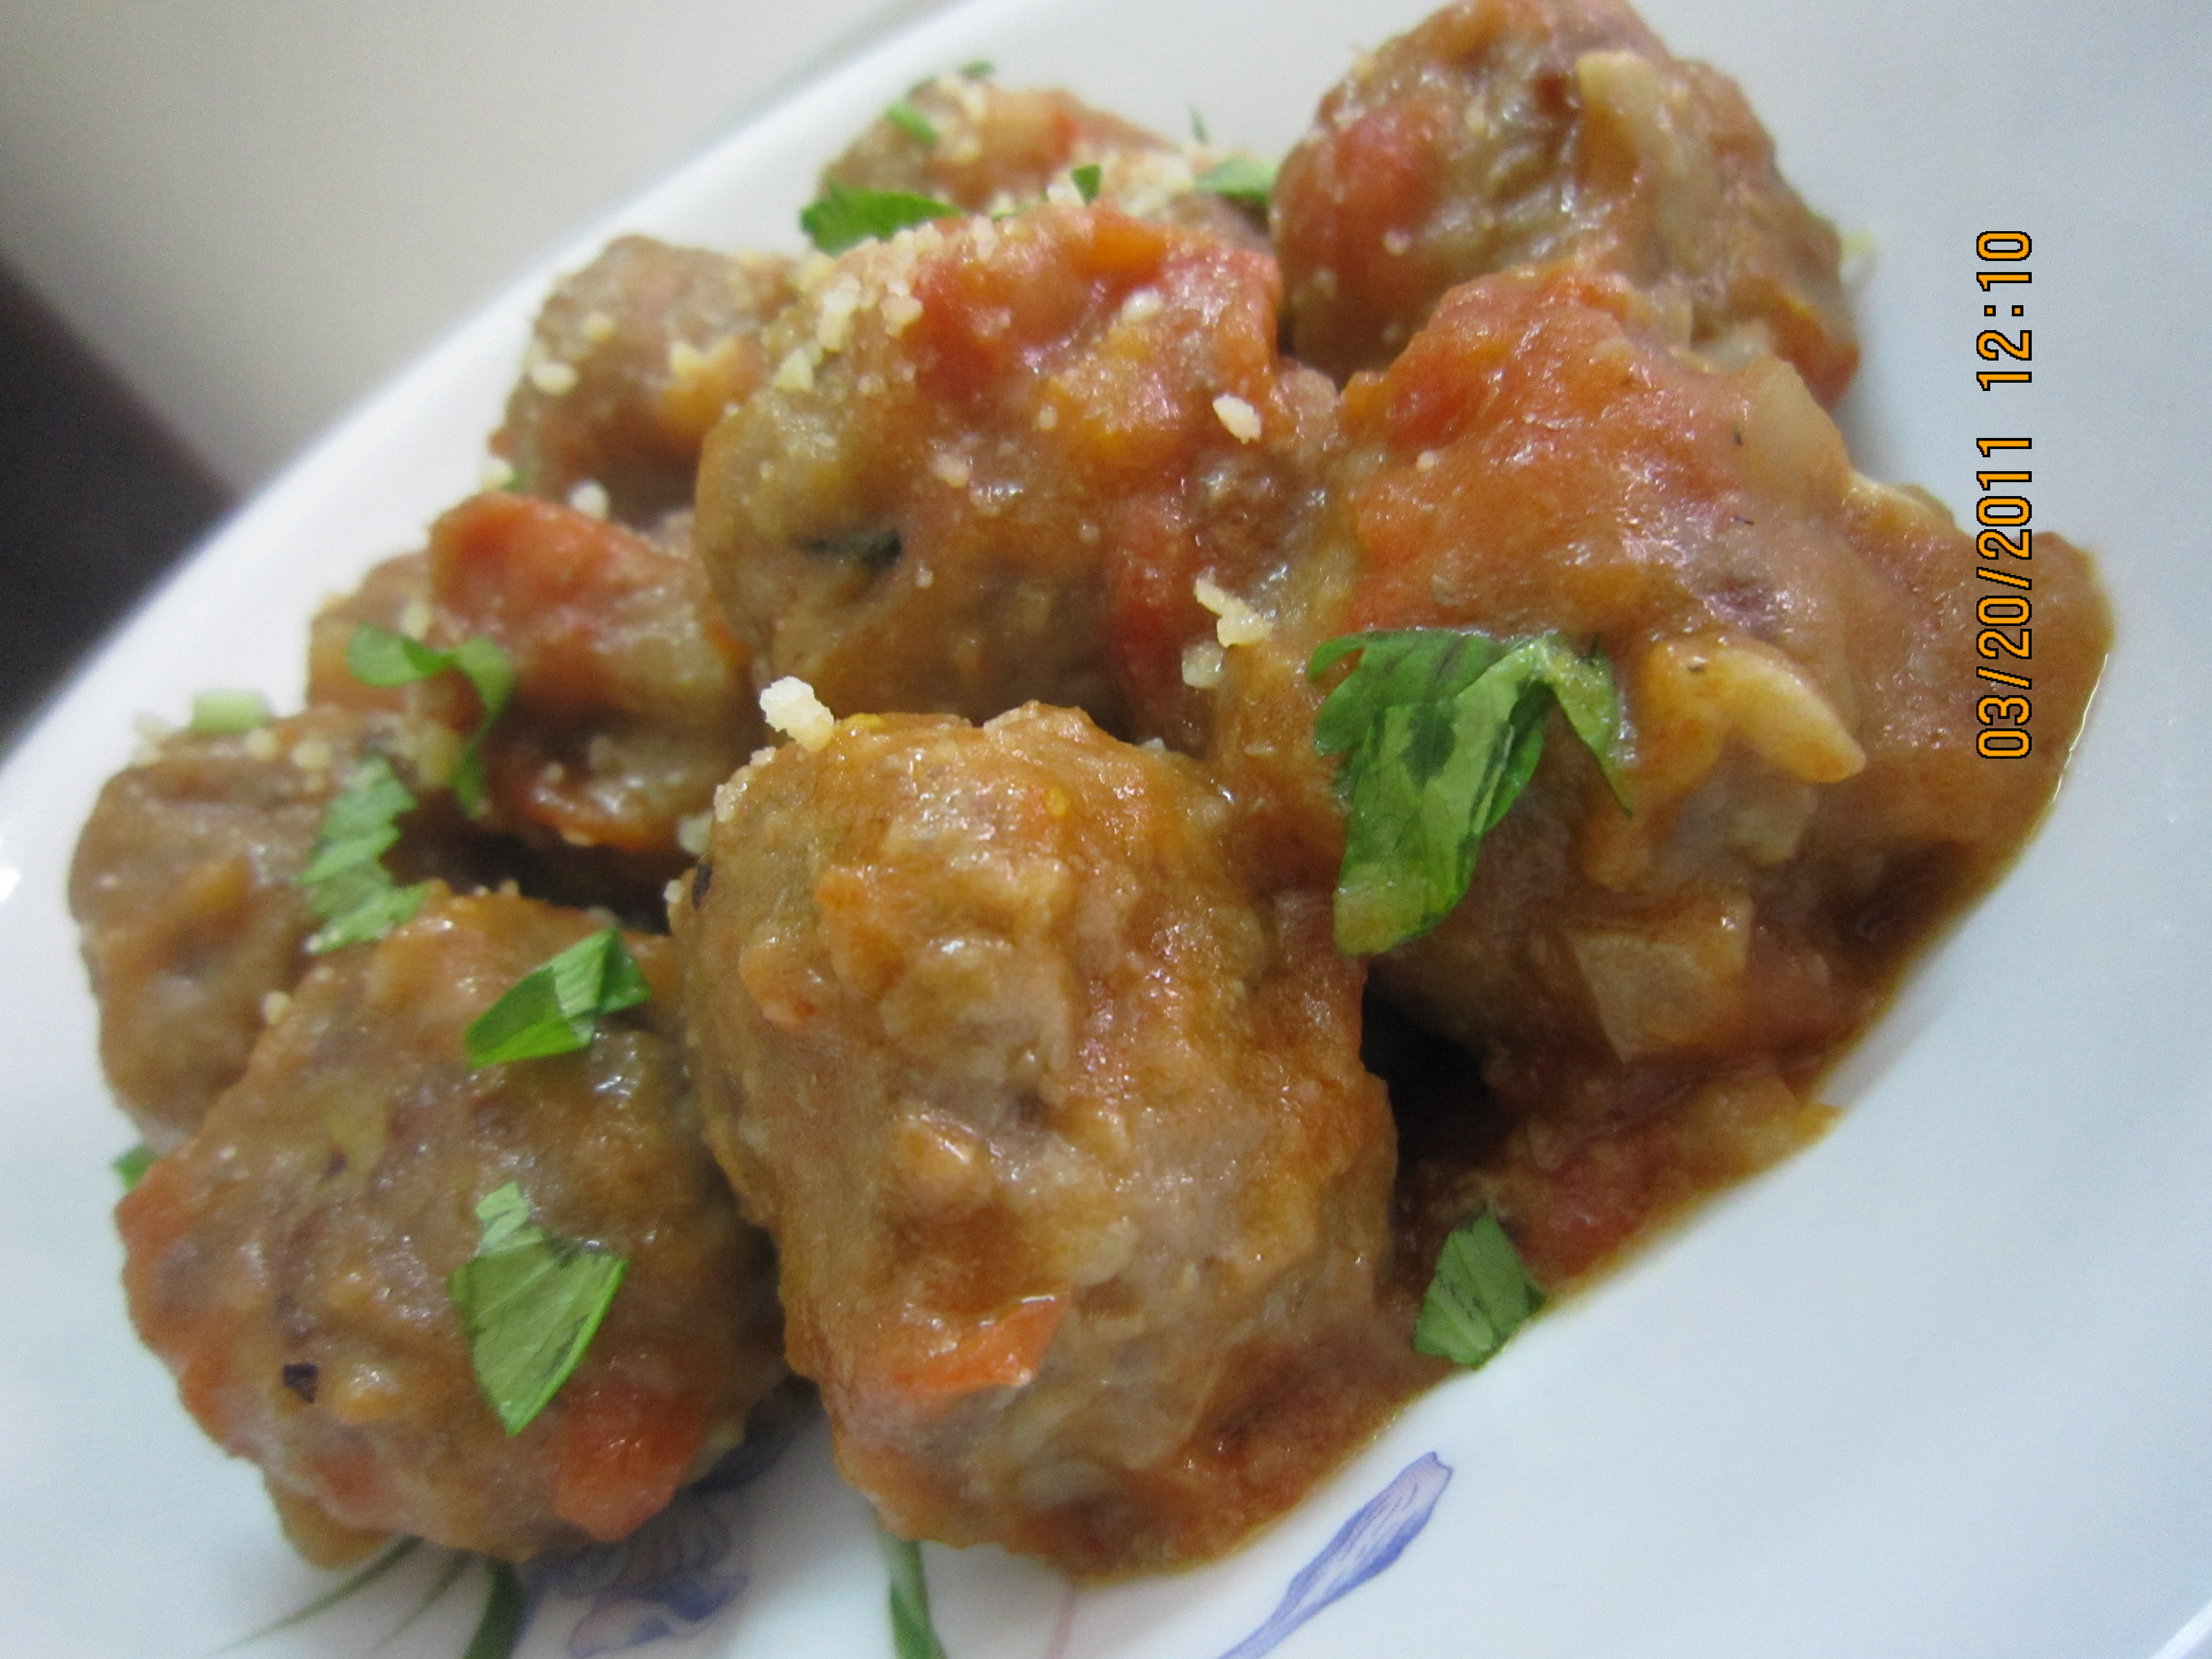 Kitchen Nightmares Meatballs